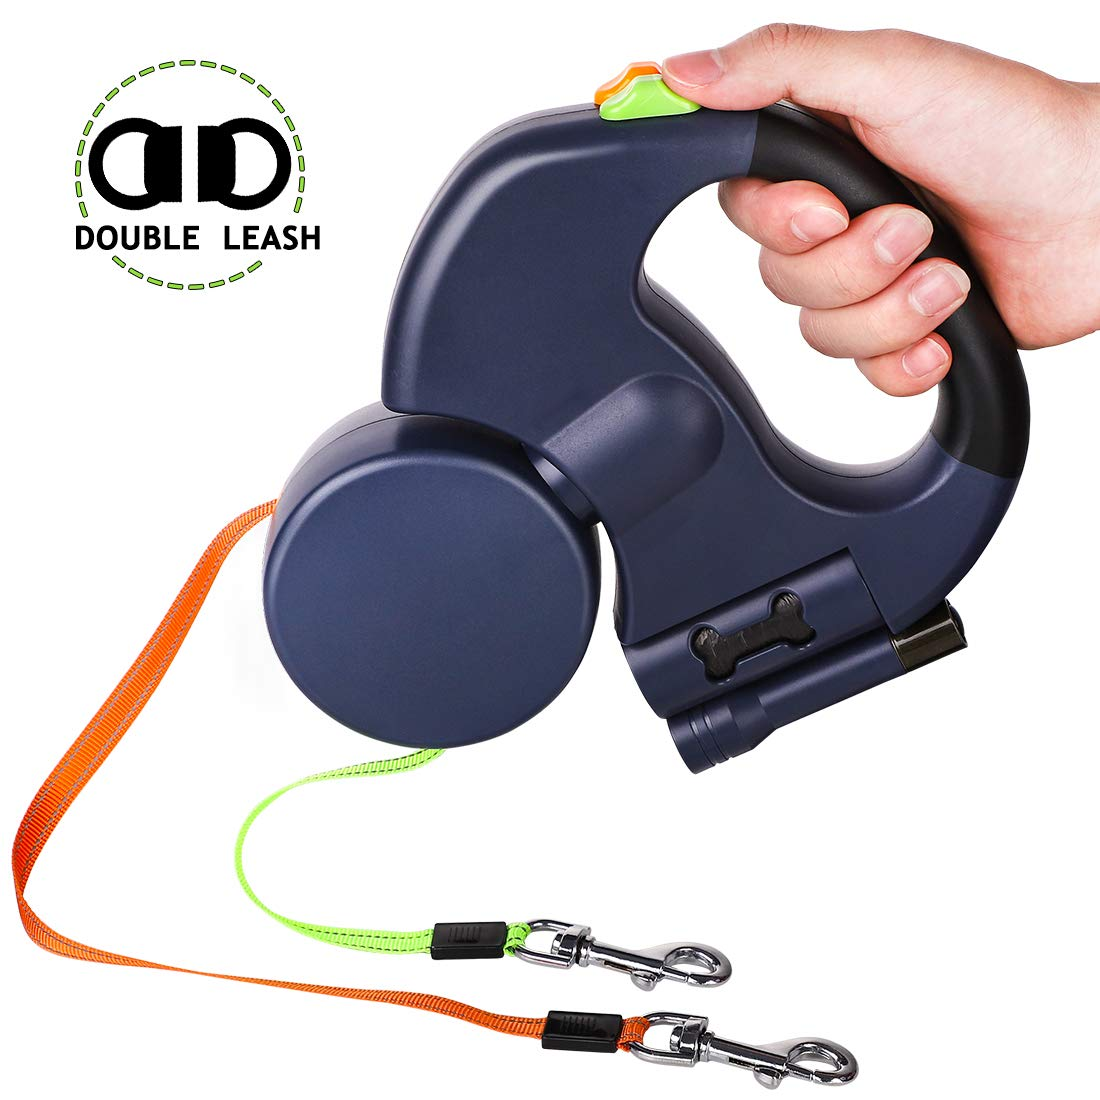 Double Retractable Dog Leash with two 3 Meters Extra Long Cords- Retractable Pet Leash for Walking 2 Dogs Up to 50lbs Each- with Poop Bag Dispenser and LED Light - Best Heavy Duty Retractable Leash by ZDZDZ